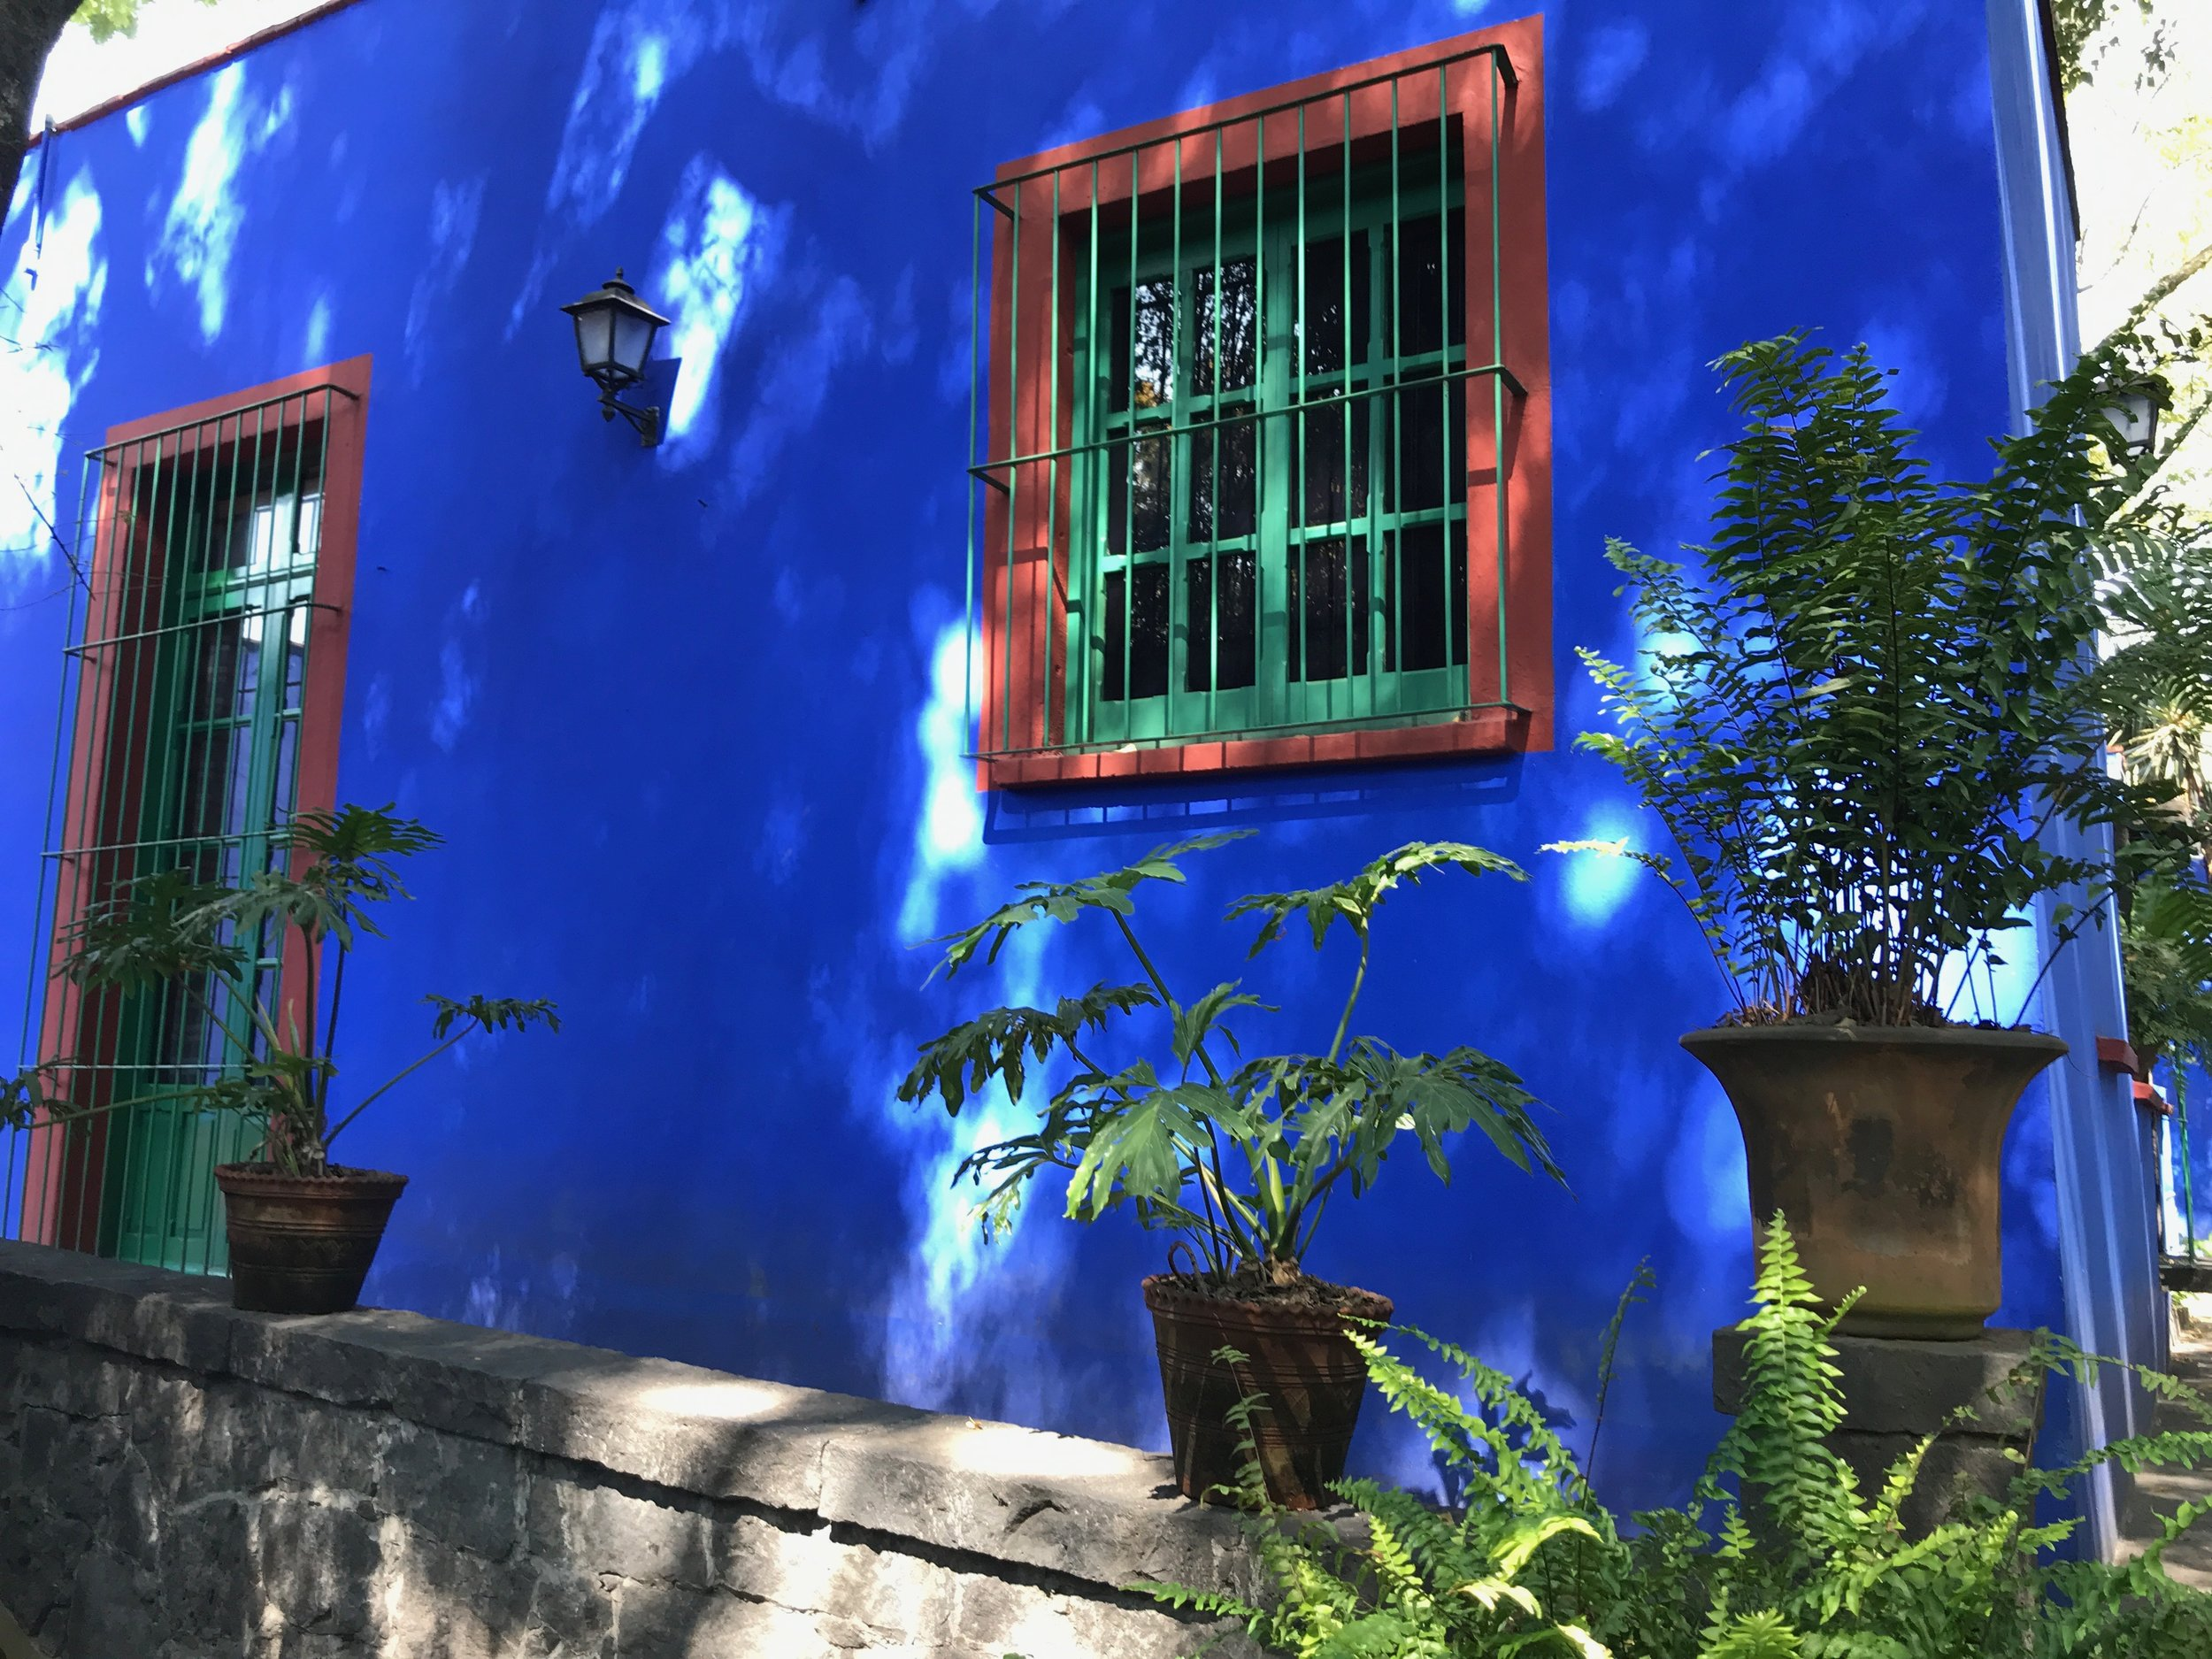 La Casa Azul, the Museo Frida Kahlo